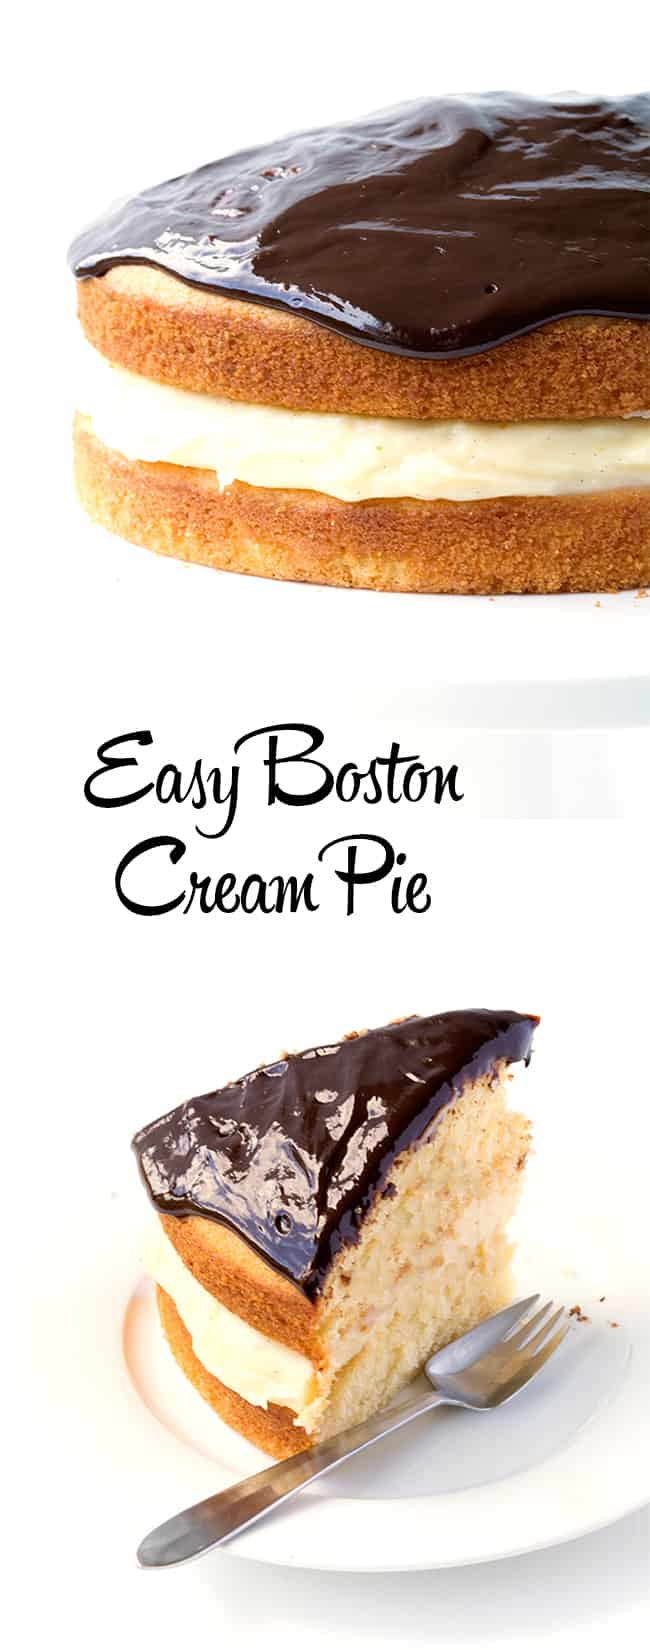 Boston Cream Pie | Sweetest Menu